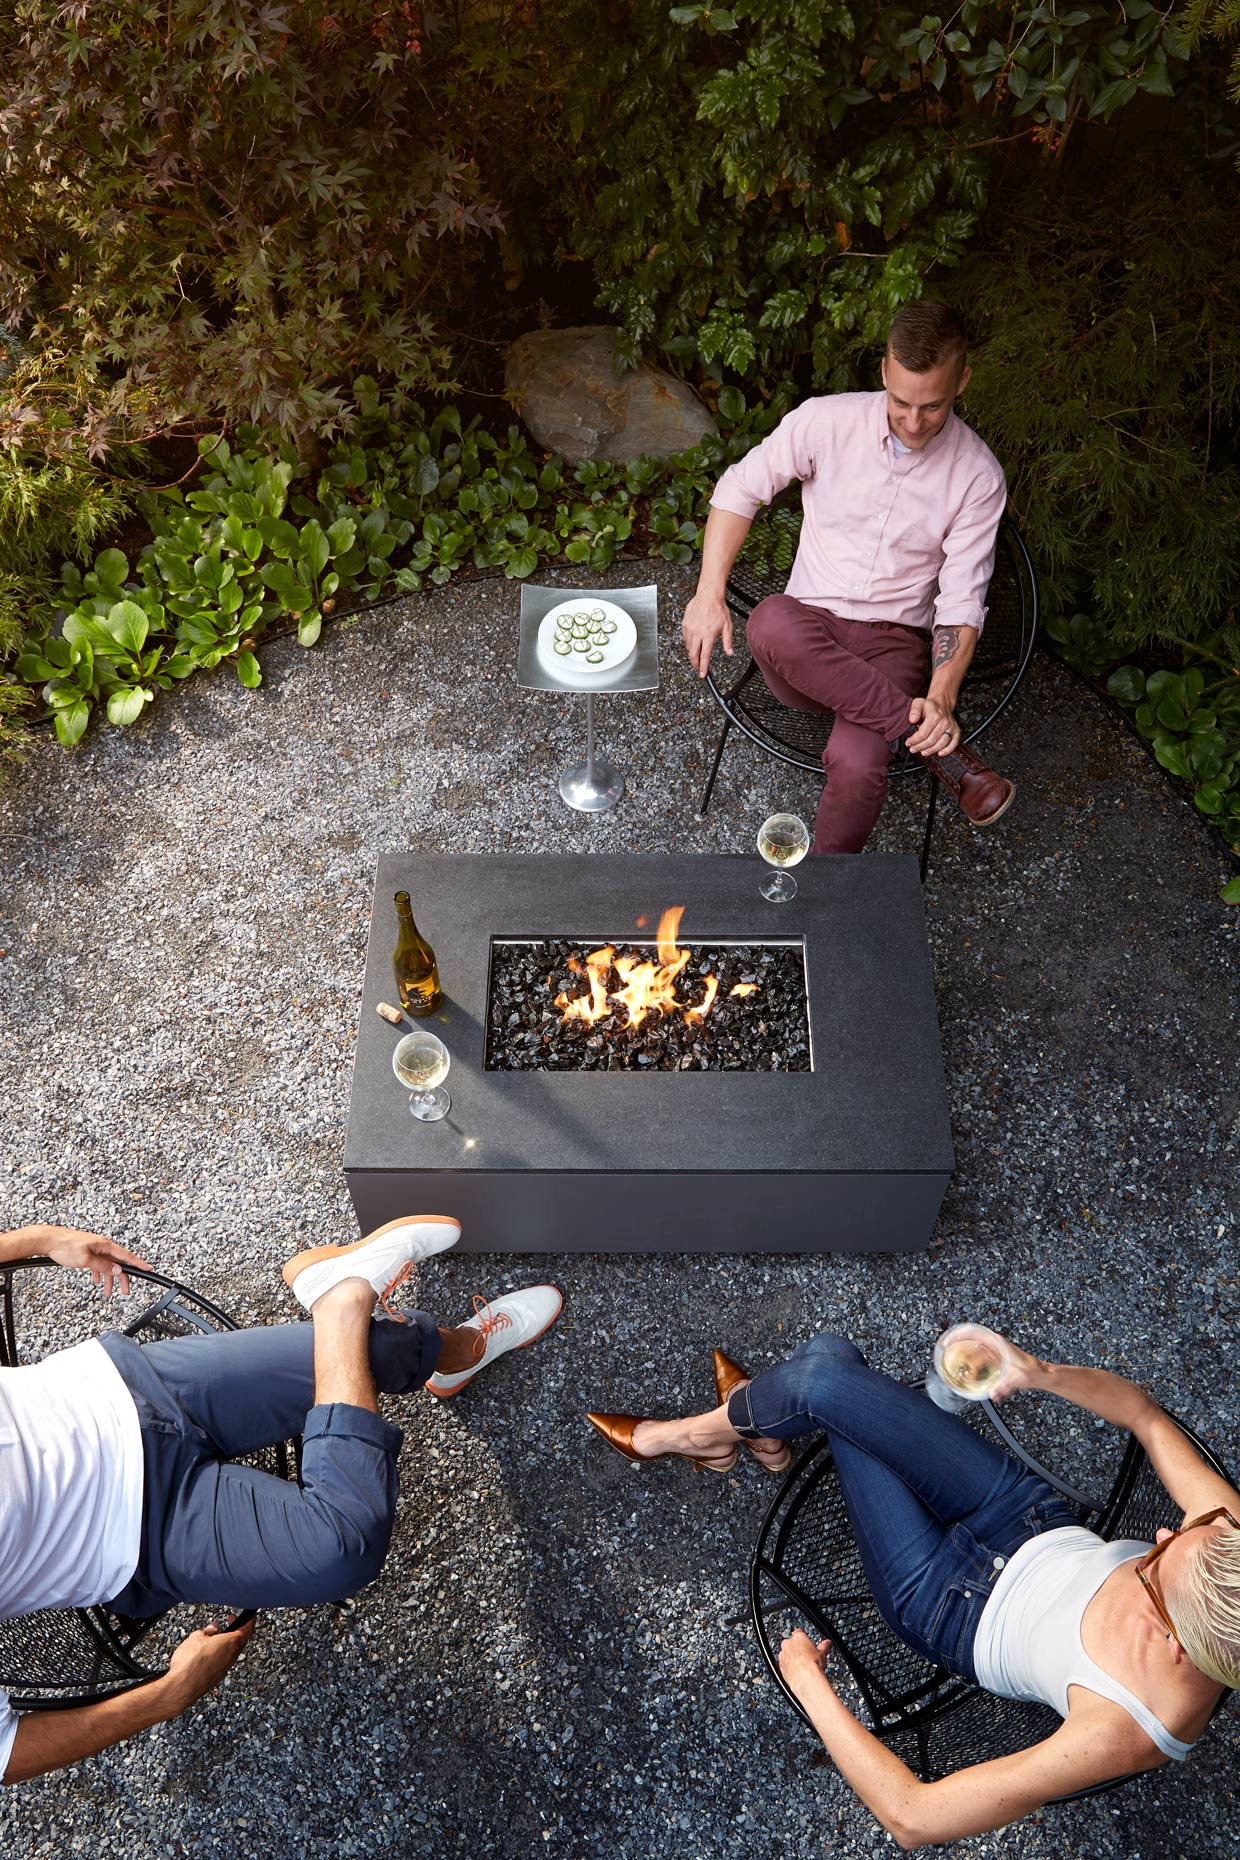 Lifestyle photography Derek Israelsen Firepit Friends